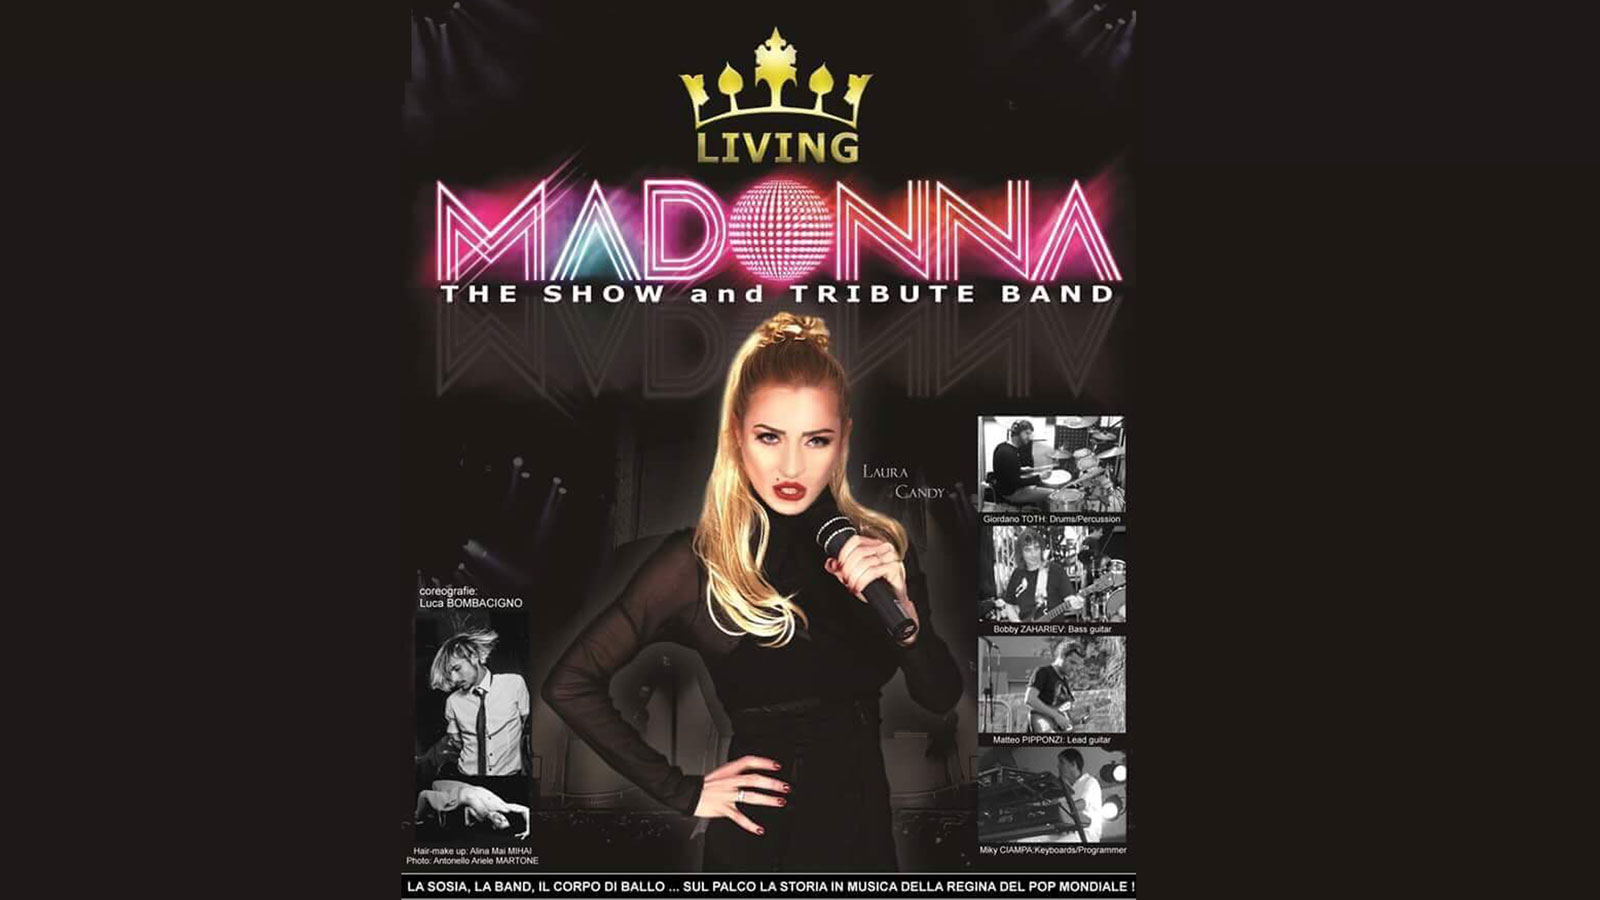 MADONNA The show and tribute band